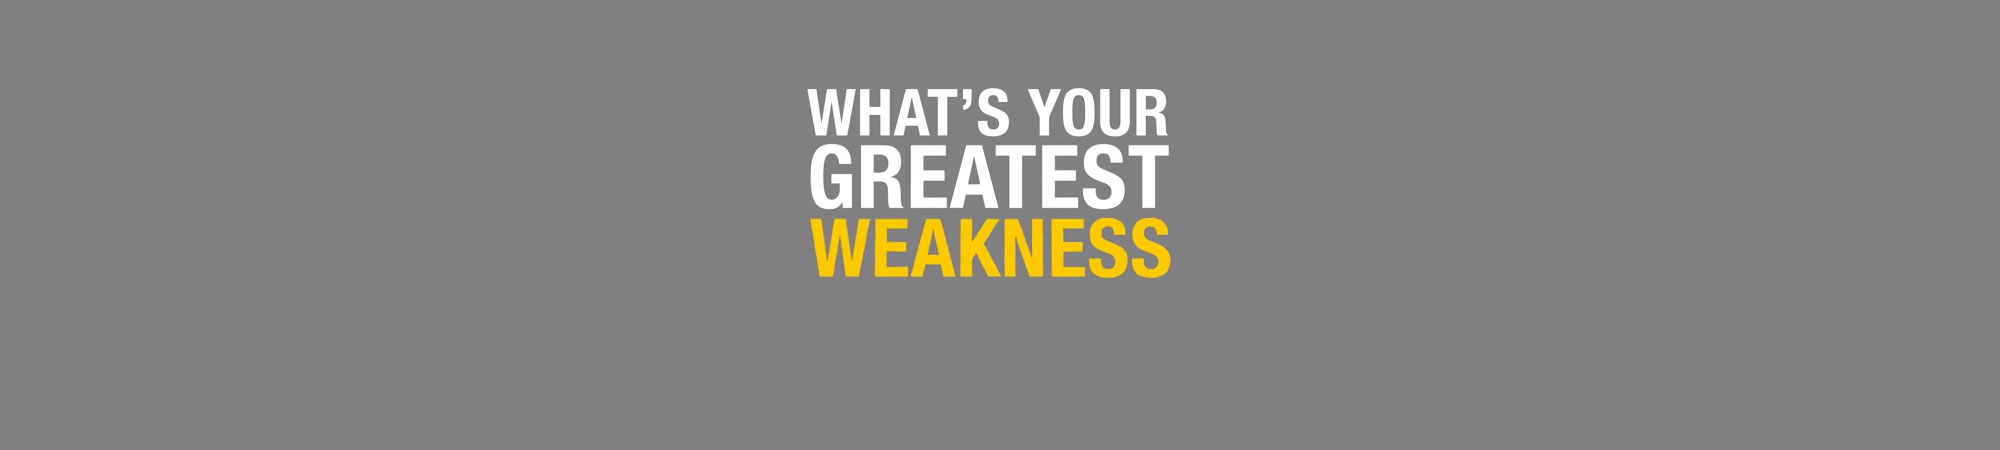 what s your greatest weakness blog